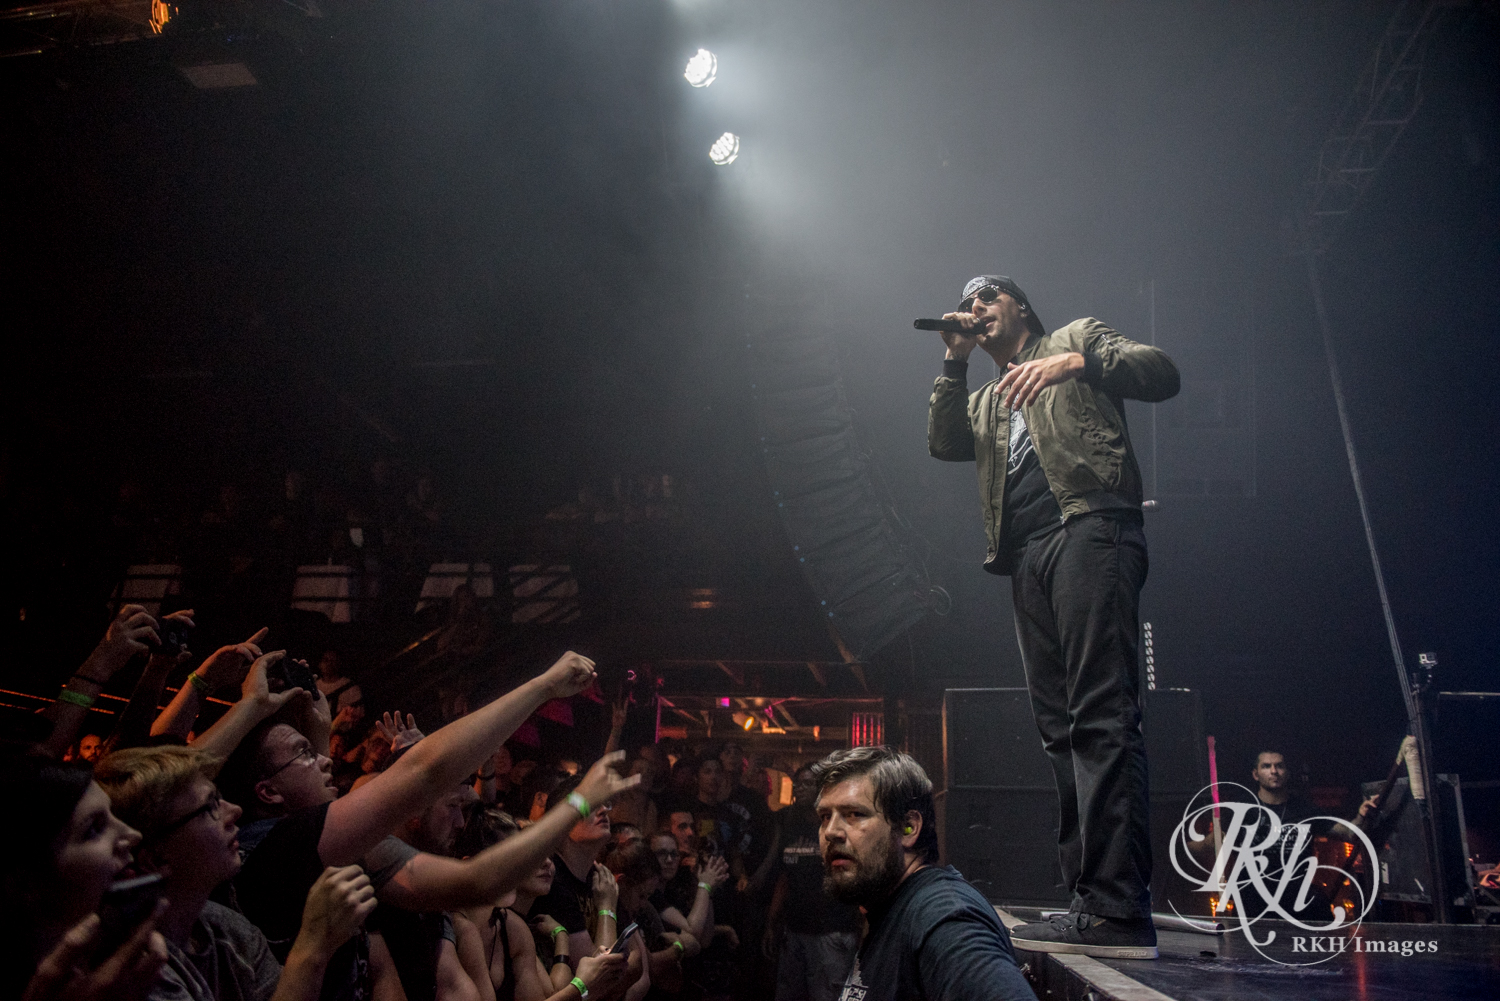 a7x rkh images (32 of 52).jpg